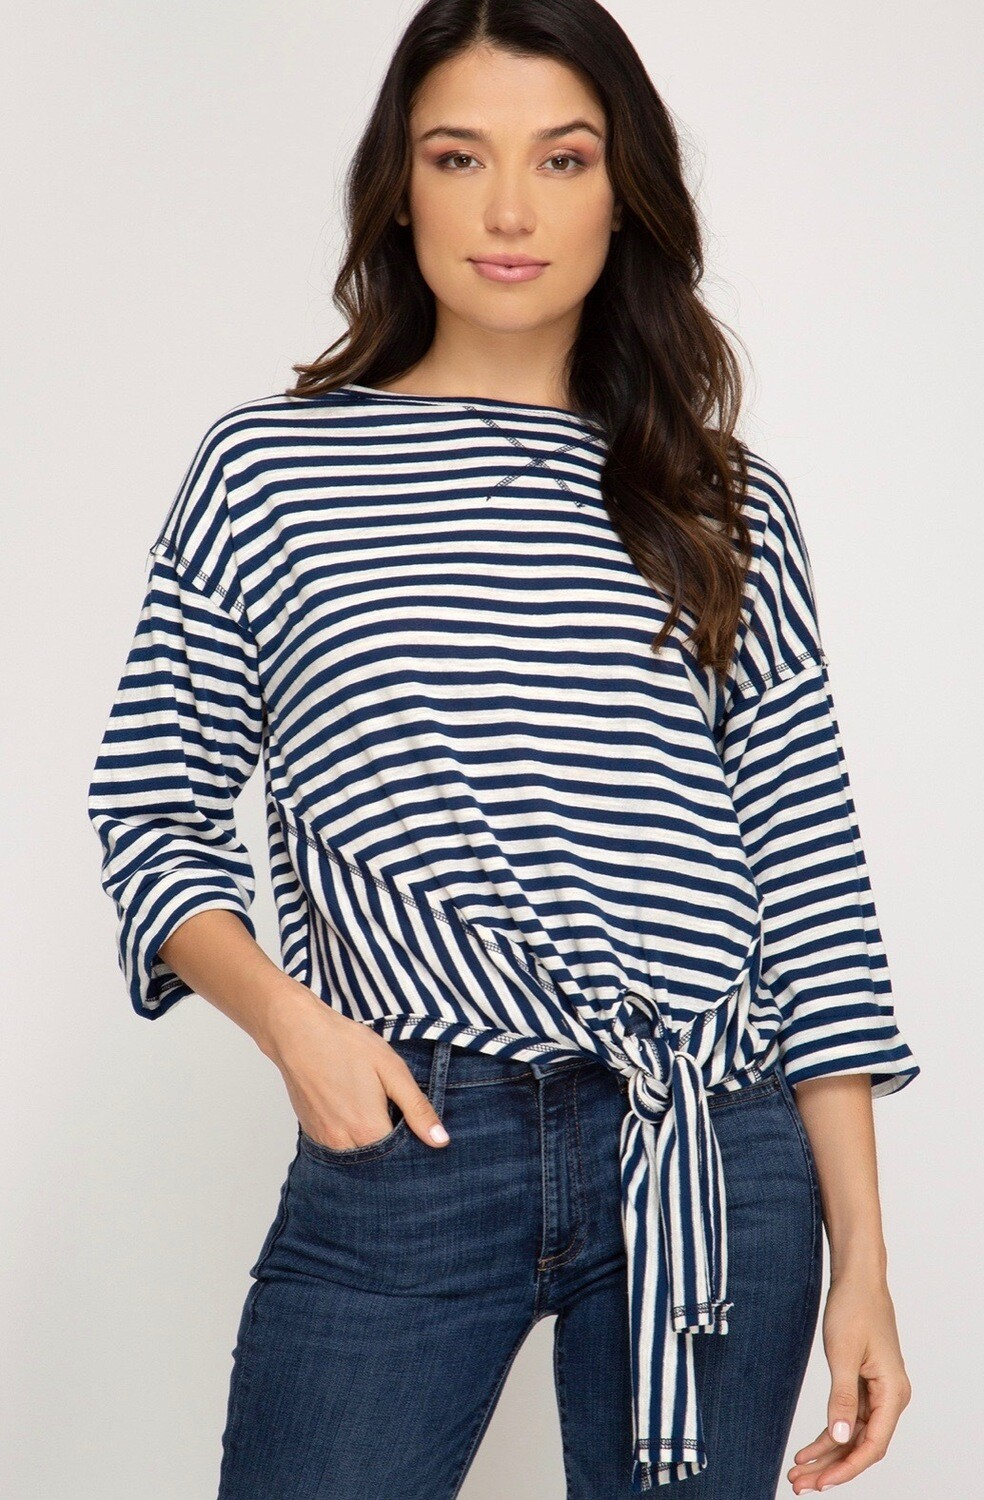 She & Sky Top Stripe